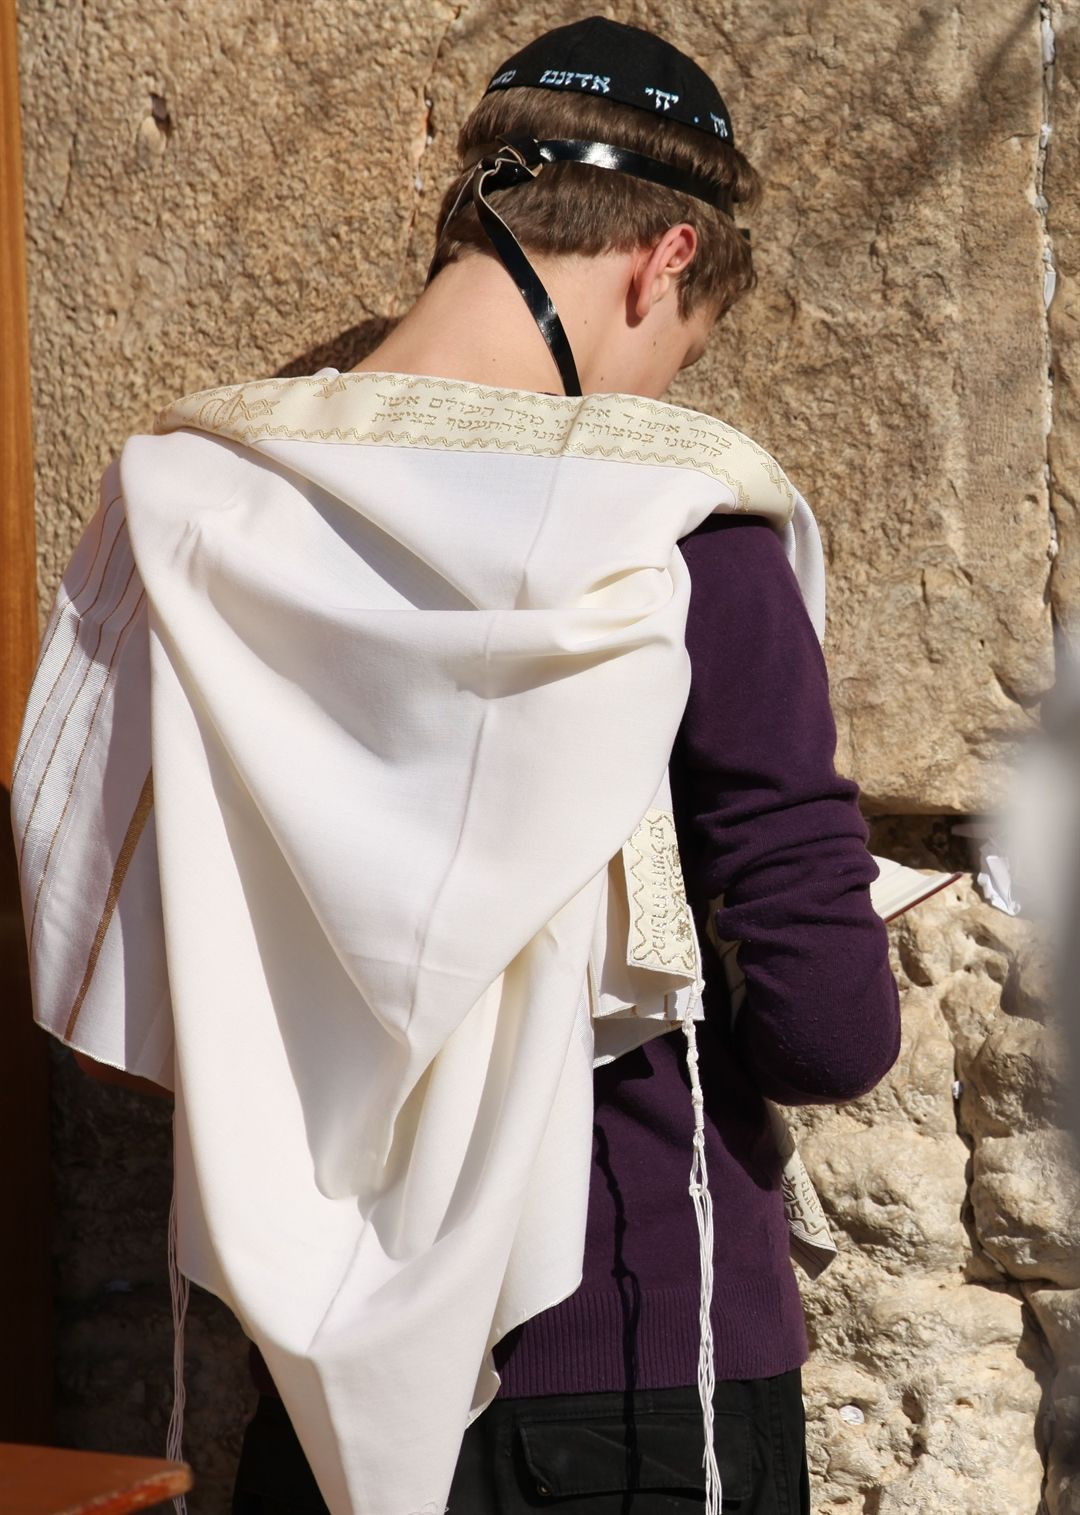 A Jewish teen wearing a tallit (prayer shawl), tefillin ...